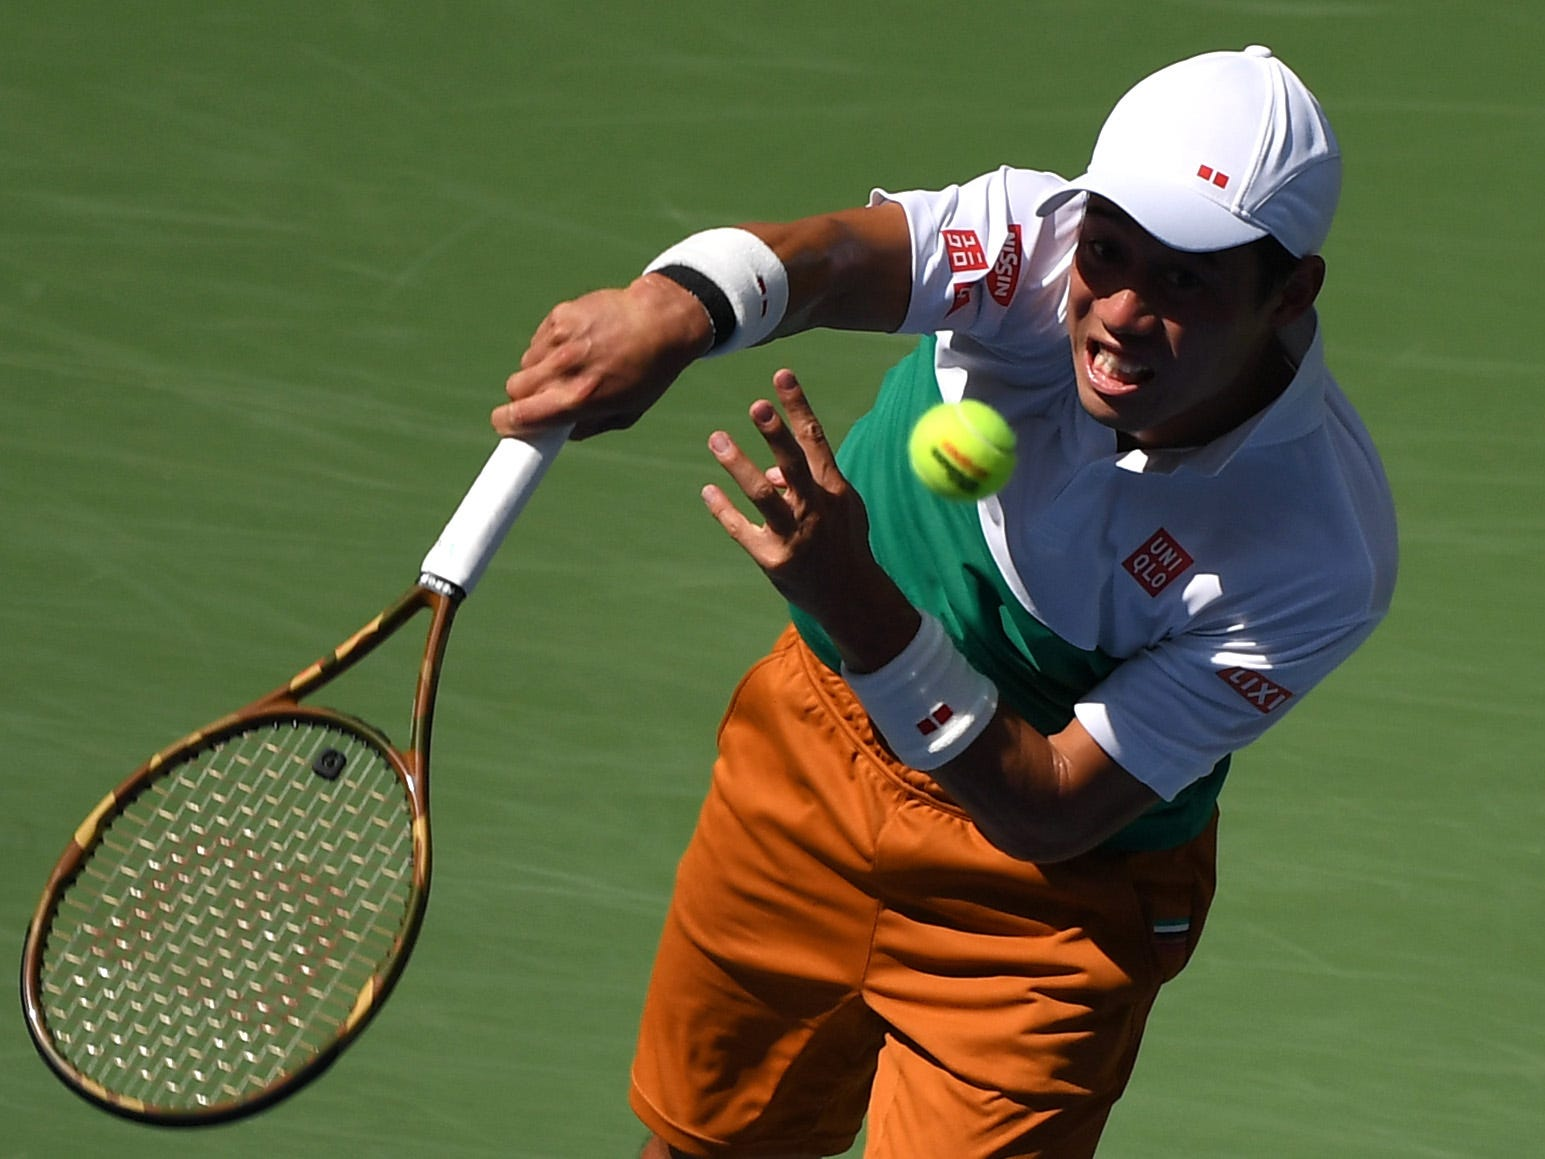 Japan's Kei Nishikori of Japan serves to Croatia's Marin Cilic during their quarterfinal match.